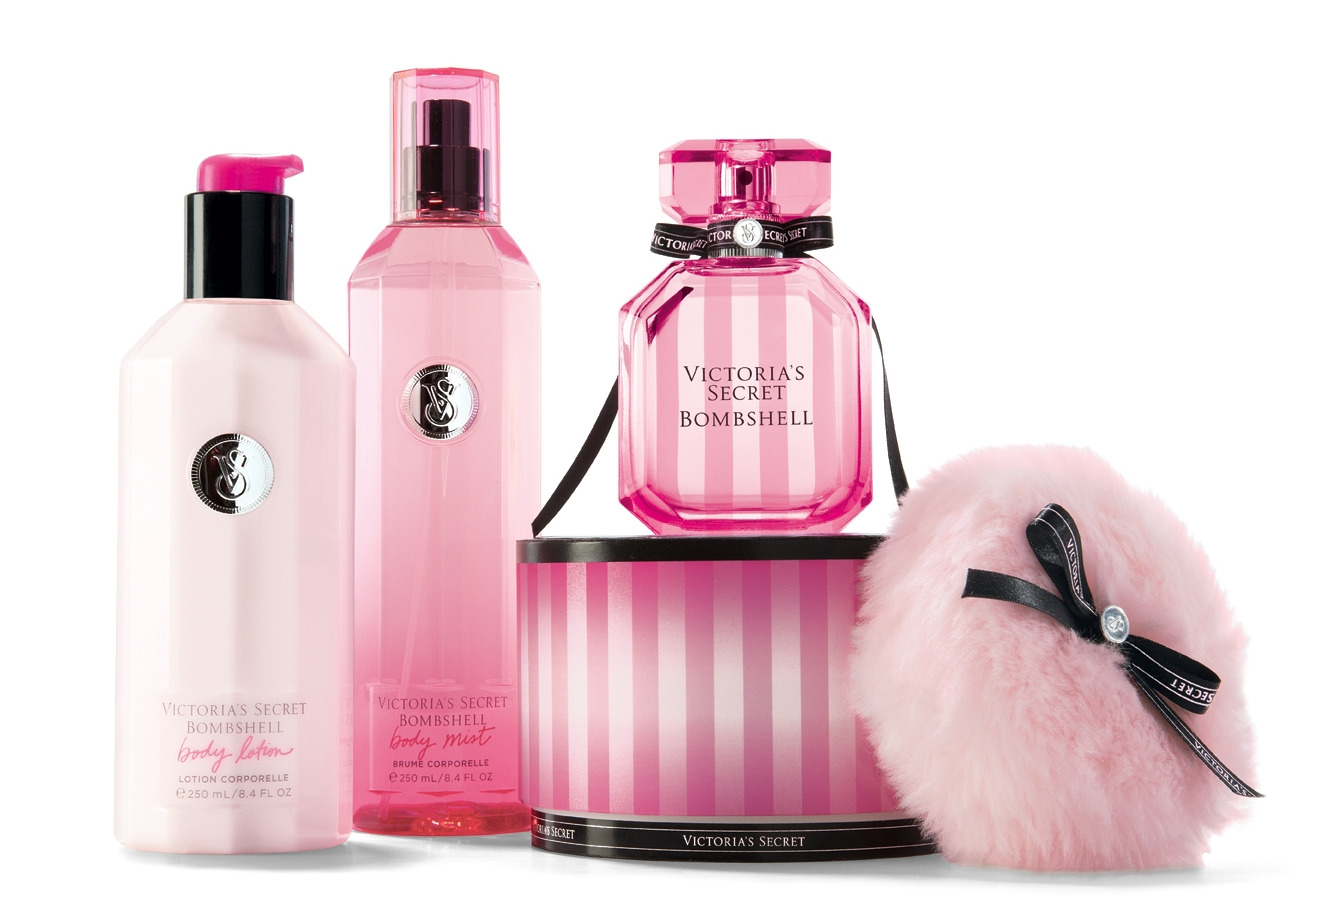 What is Victoria Secret Bombshell?